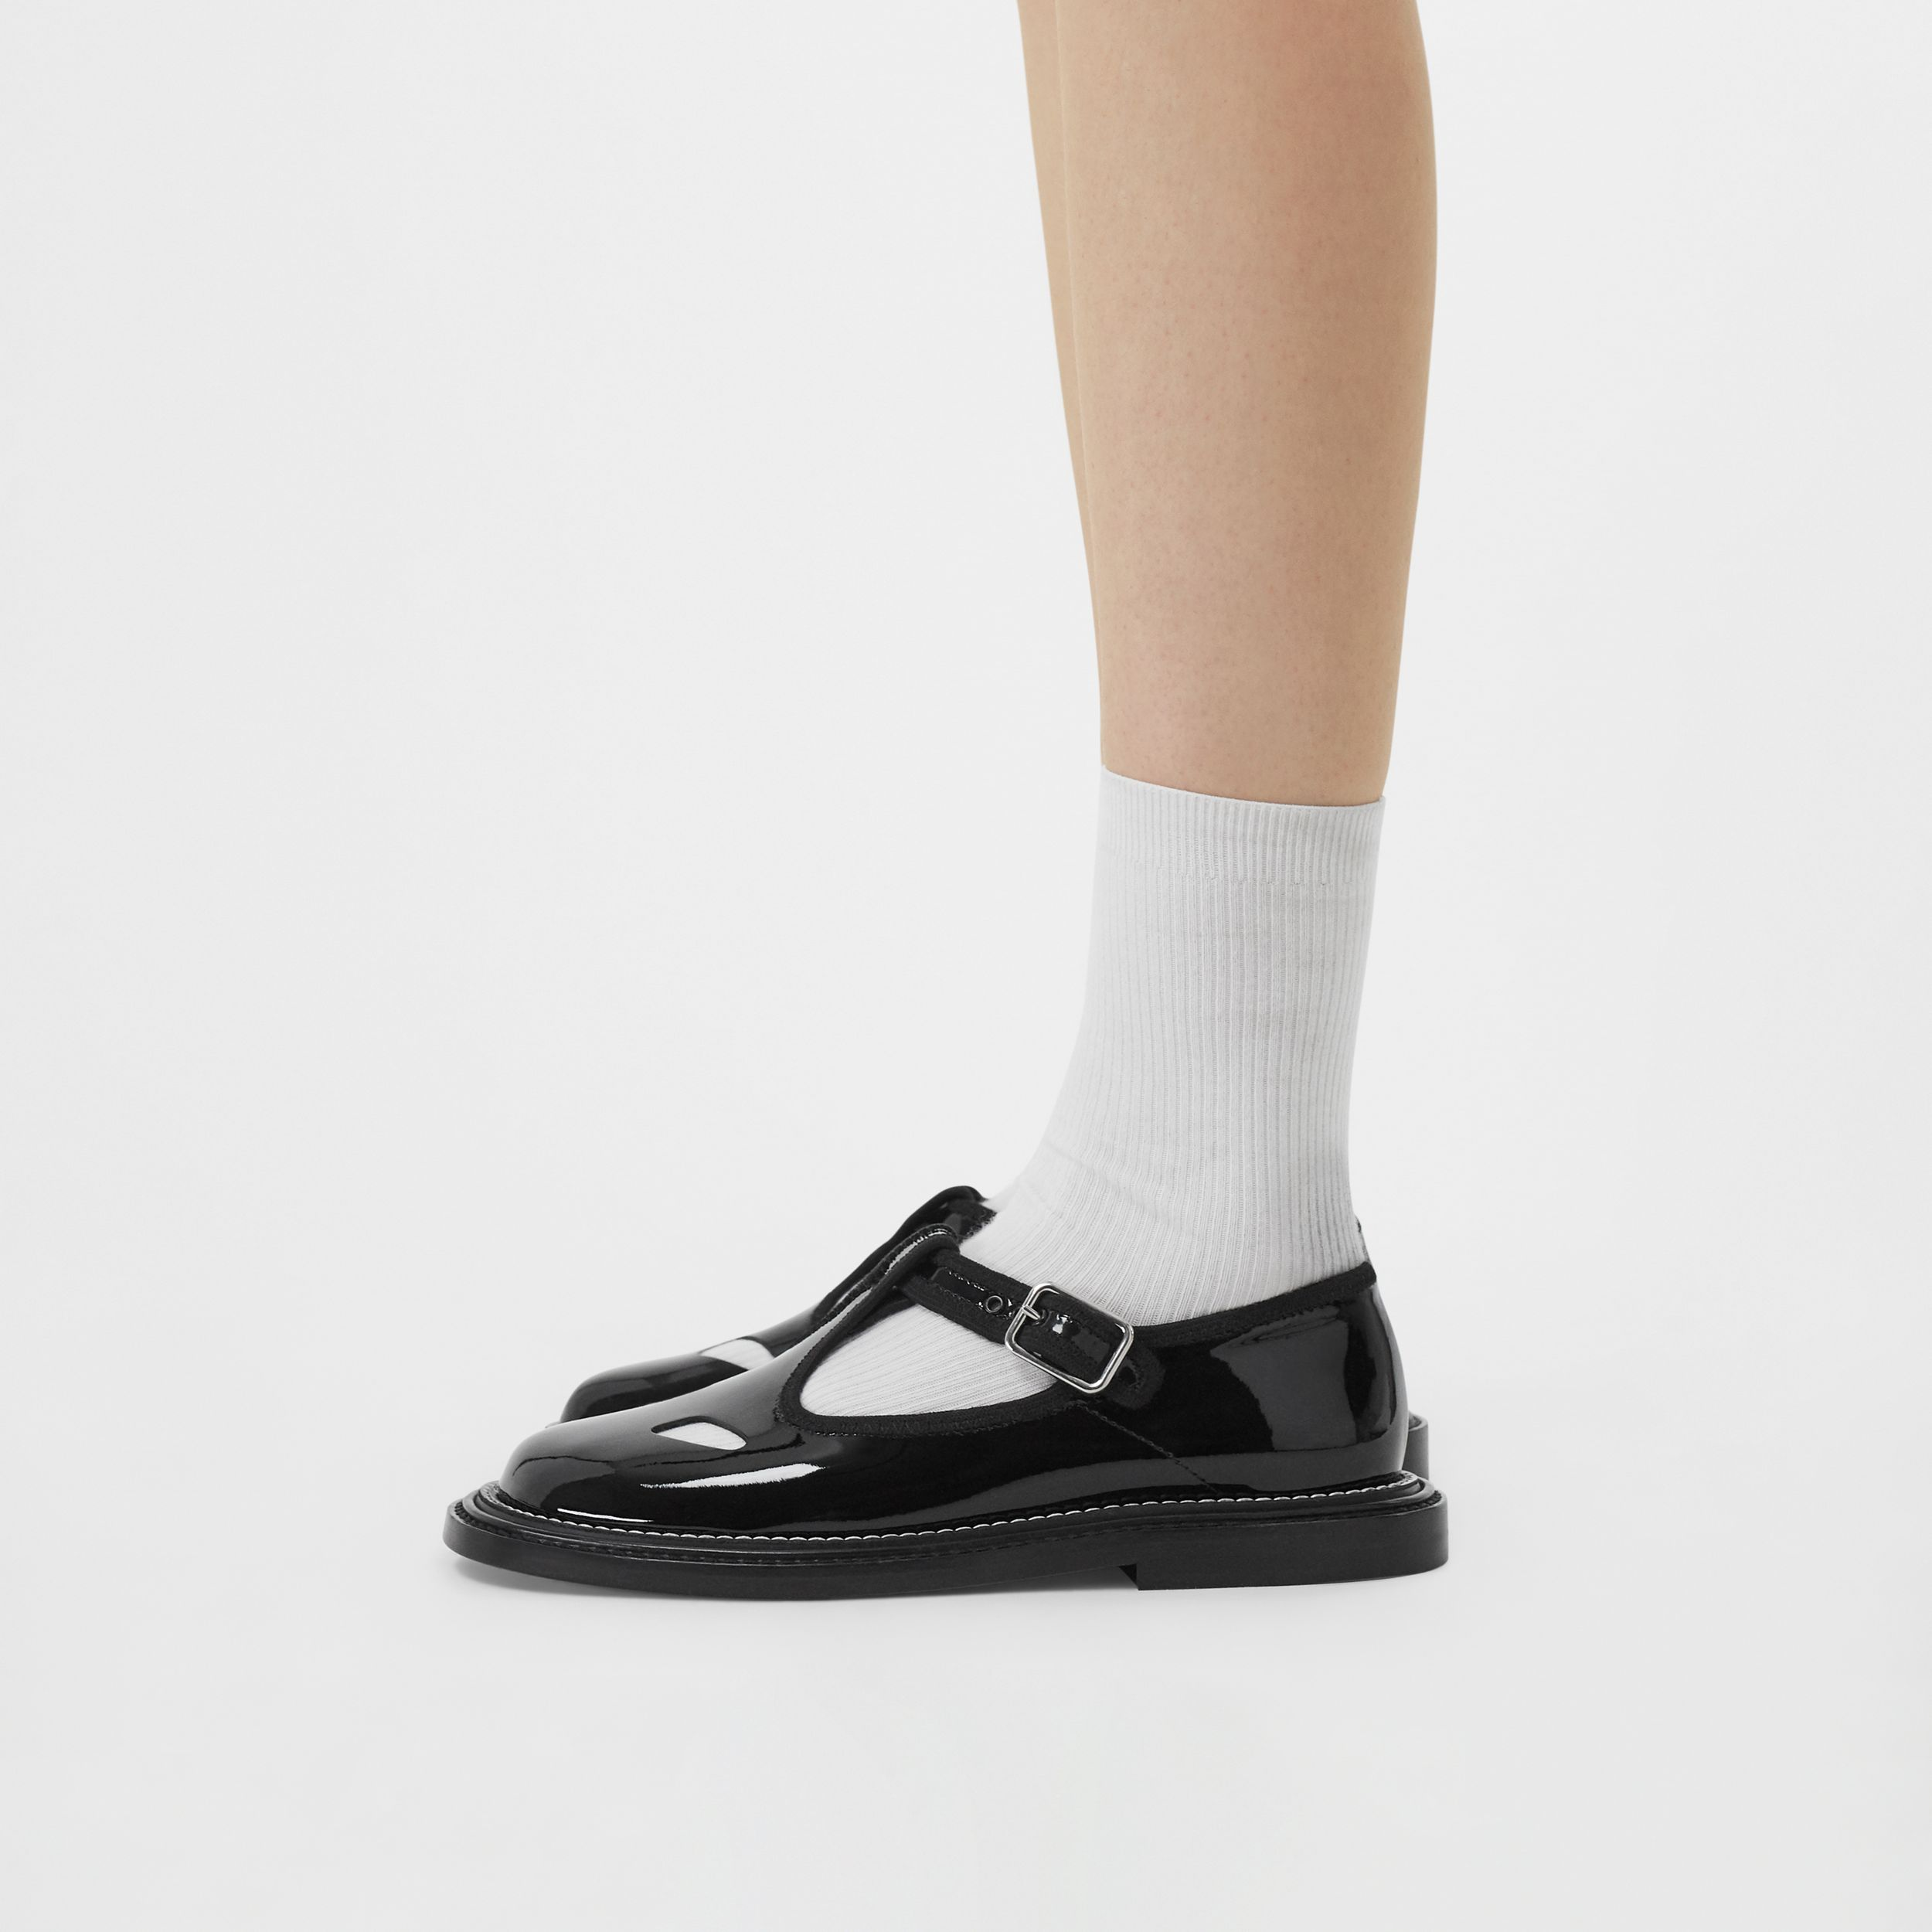 Patent Leather T-bar Shoes in Black - Women | Burberry - 3